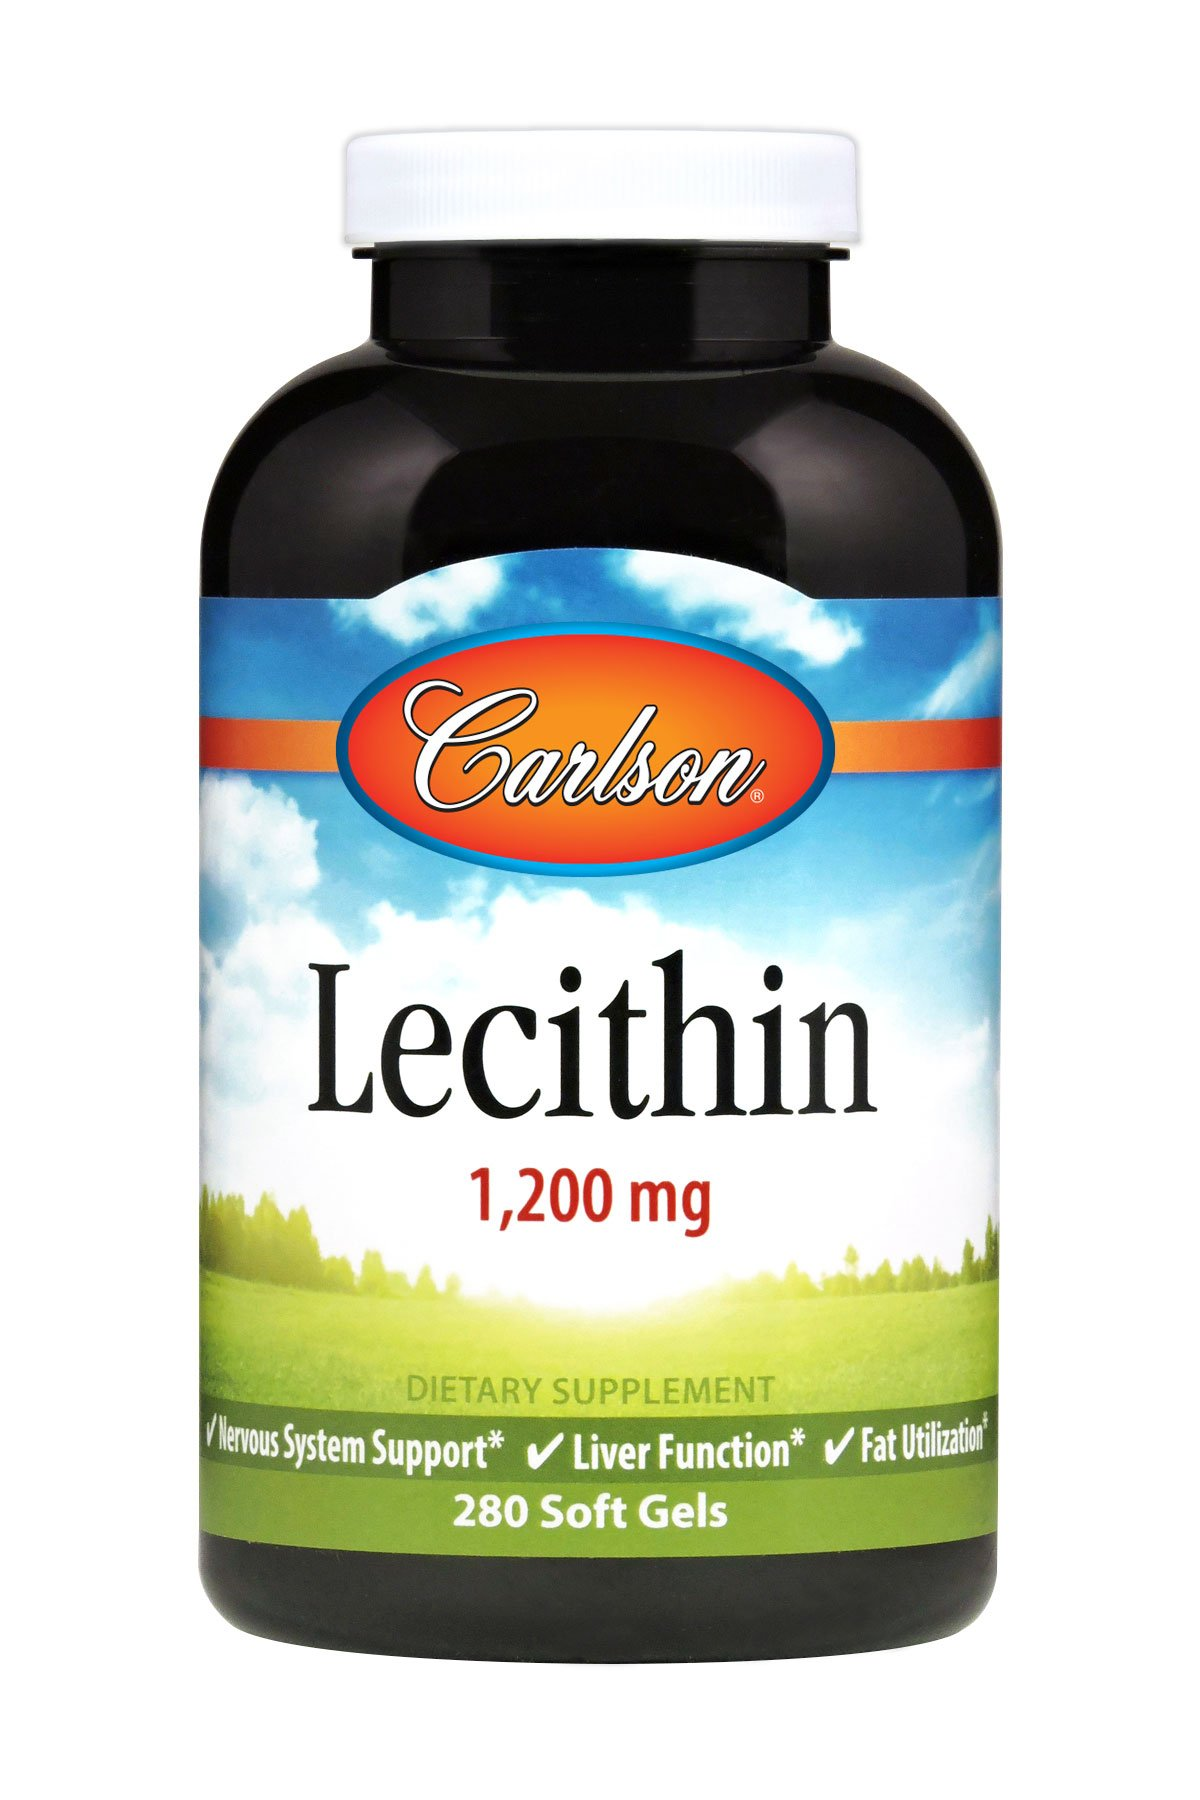 Carlson - Lecithin, 1200 mg, Nervous System & Liver Function, Unbleached Soy Lecithin, 280 soft gels by Carlson